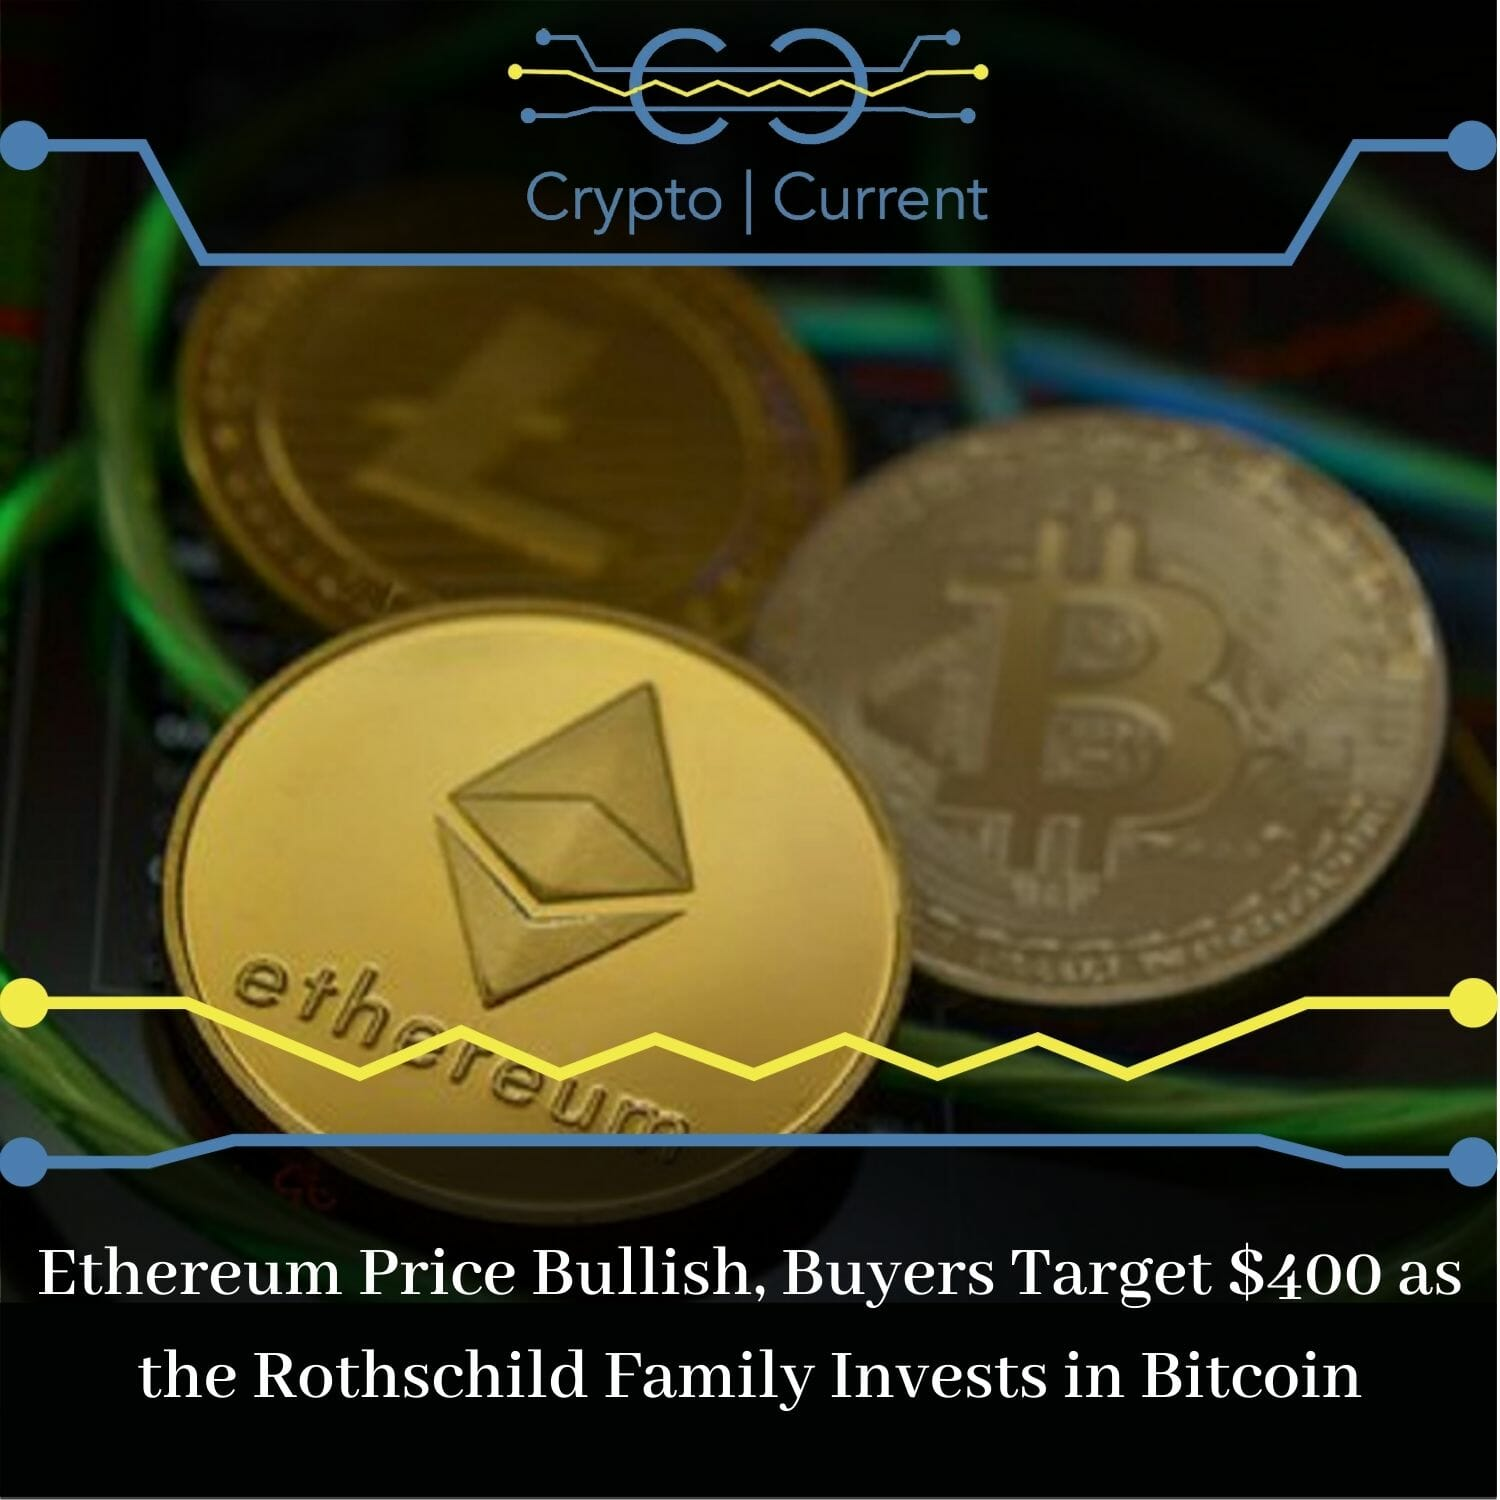 Ethereum Price Bullish, Buyers Target $400 as the Rothschild Family Invests in Bitcoin